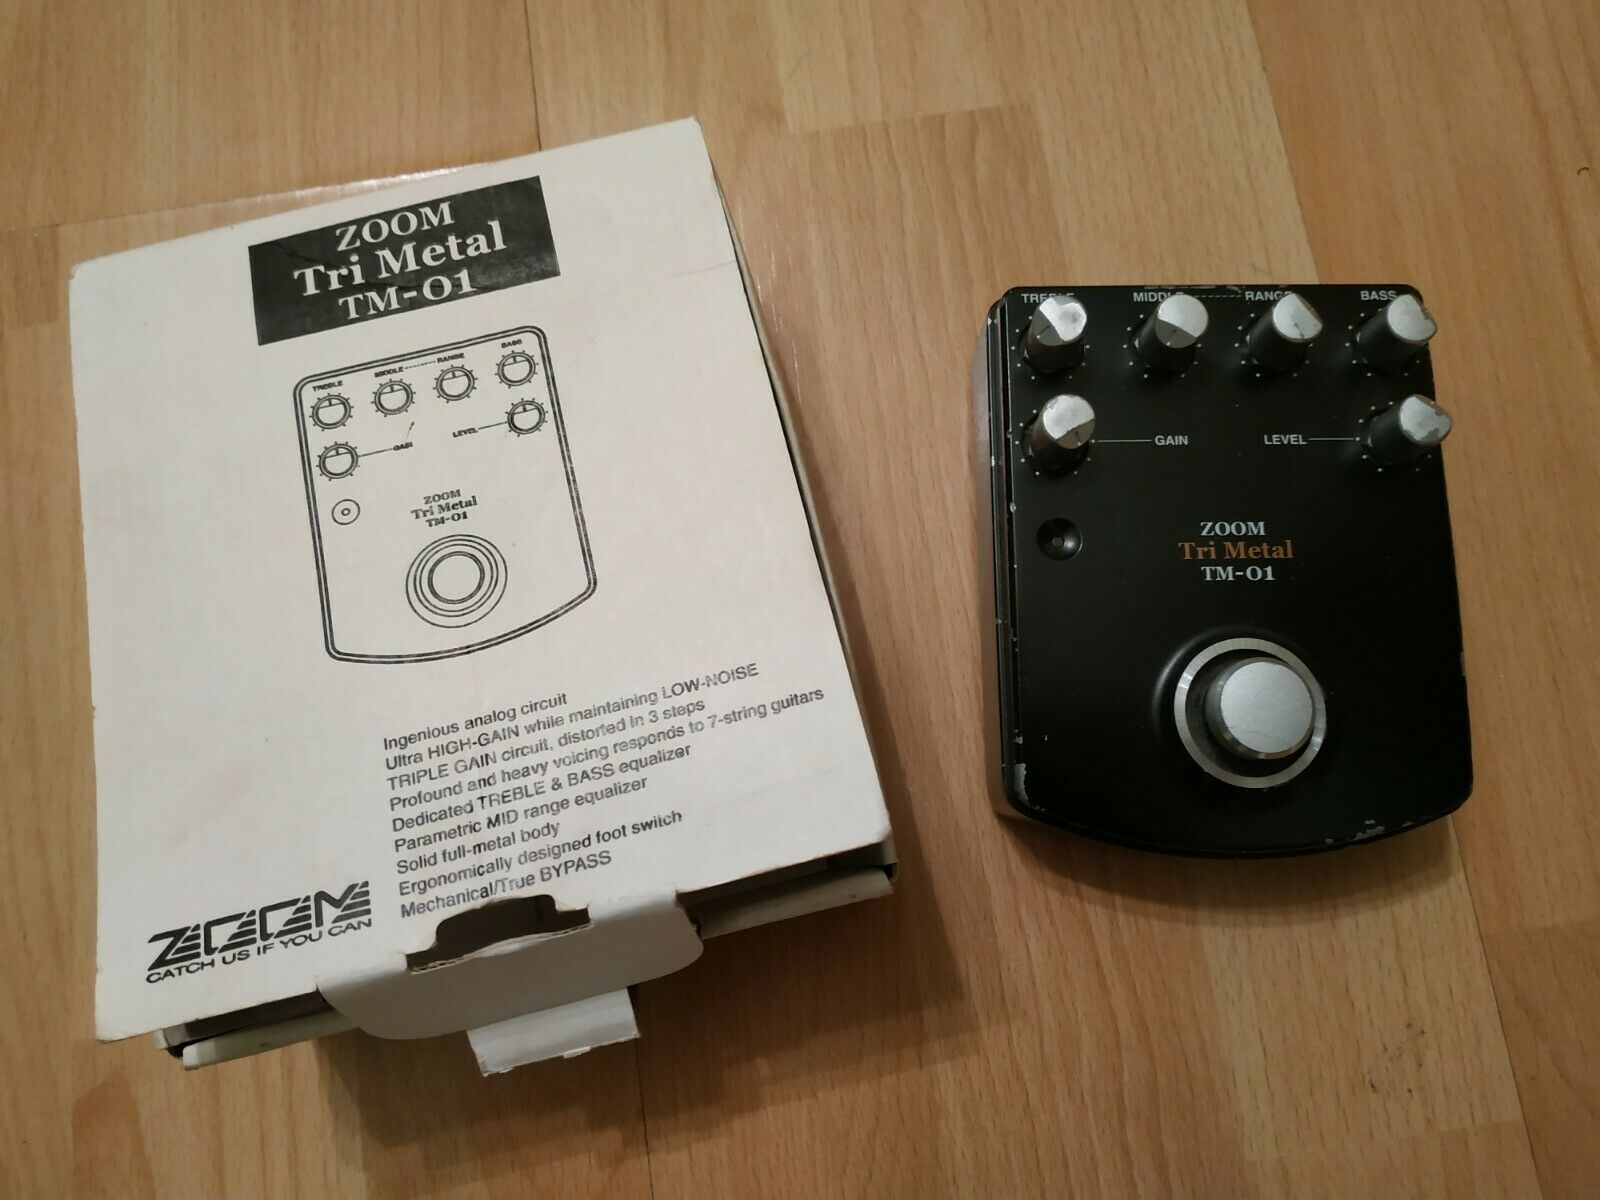 VERY RARE  ZOOM TRI METAL TM-01 BRUTAL HI-GAIN METAL DISTORTION PEDAL DX